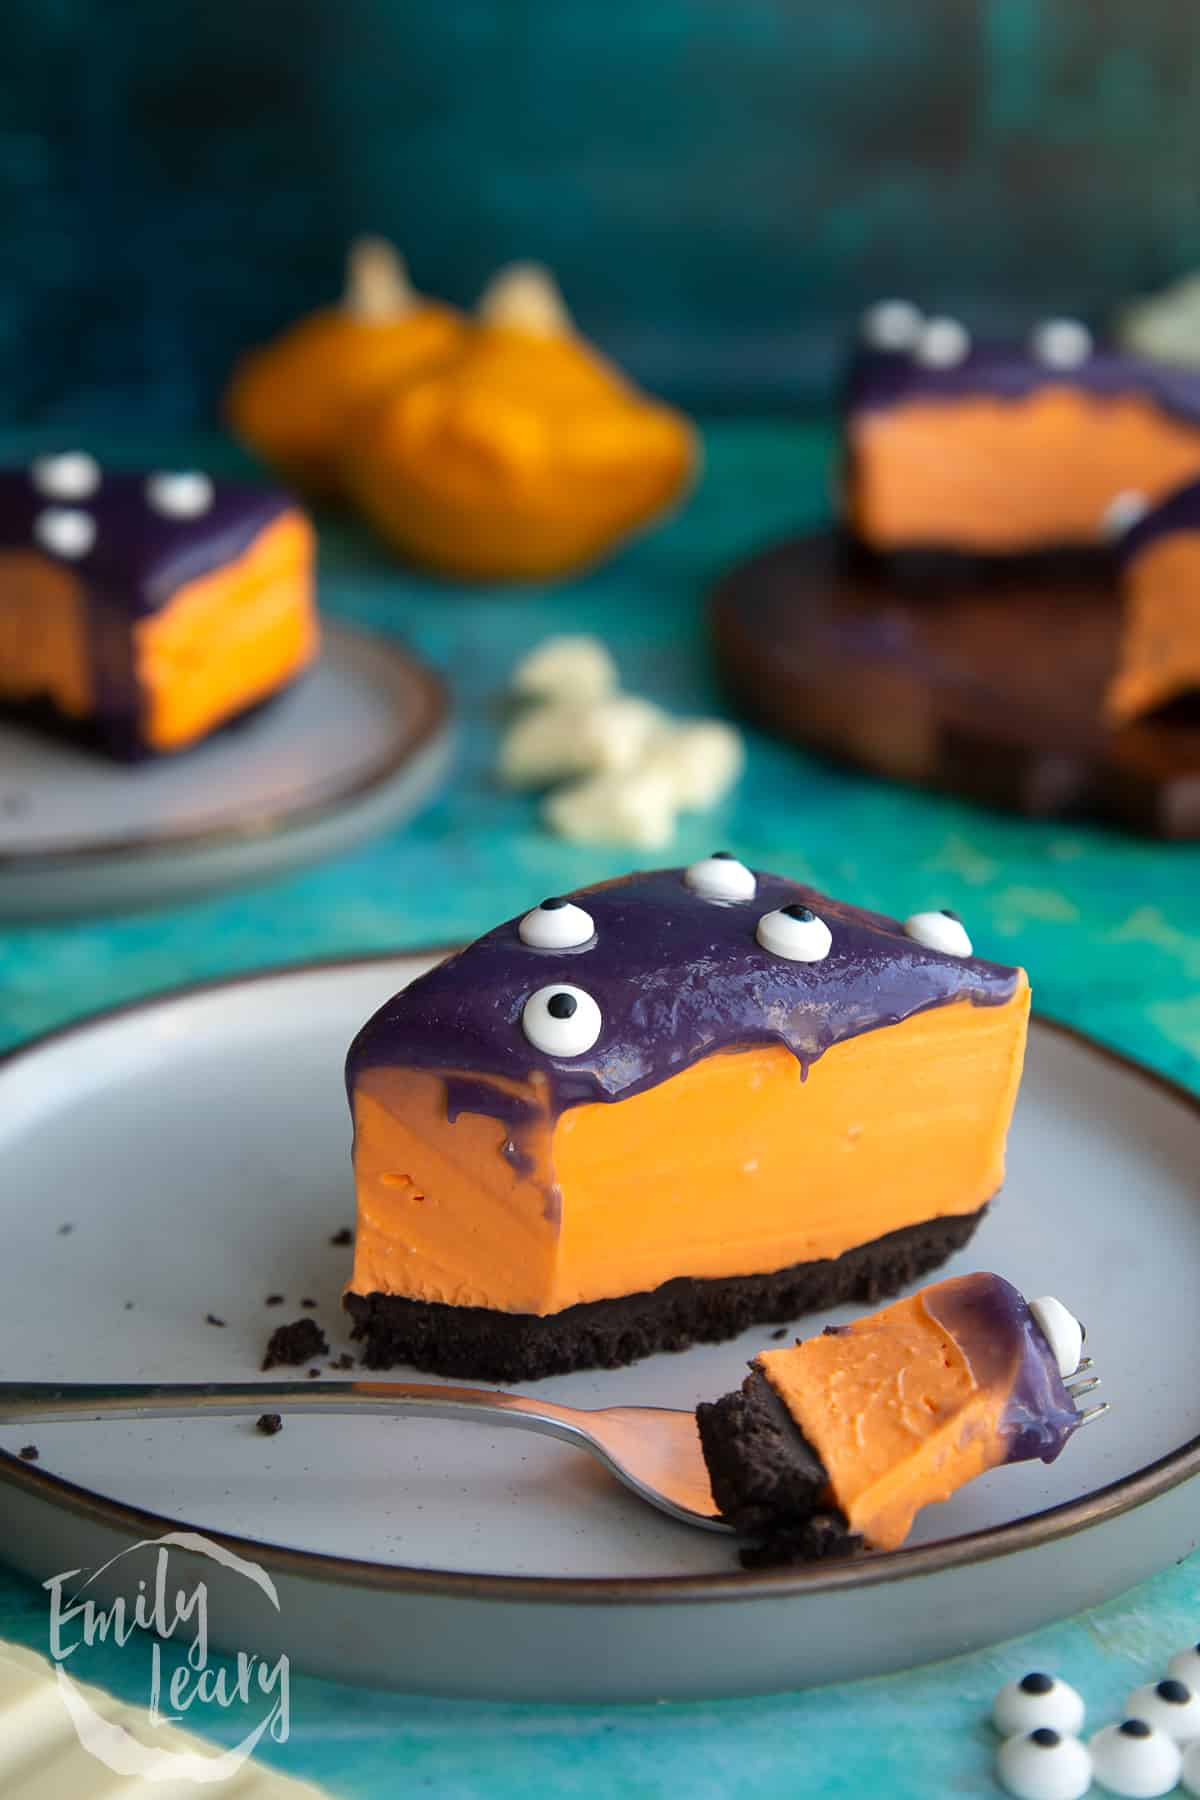 Slice of orange and strawberry Halloween cheesecake with an Oreo base on a plate. Some has been removed with a fork that rests on the plate.